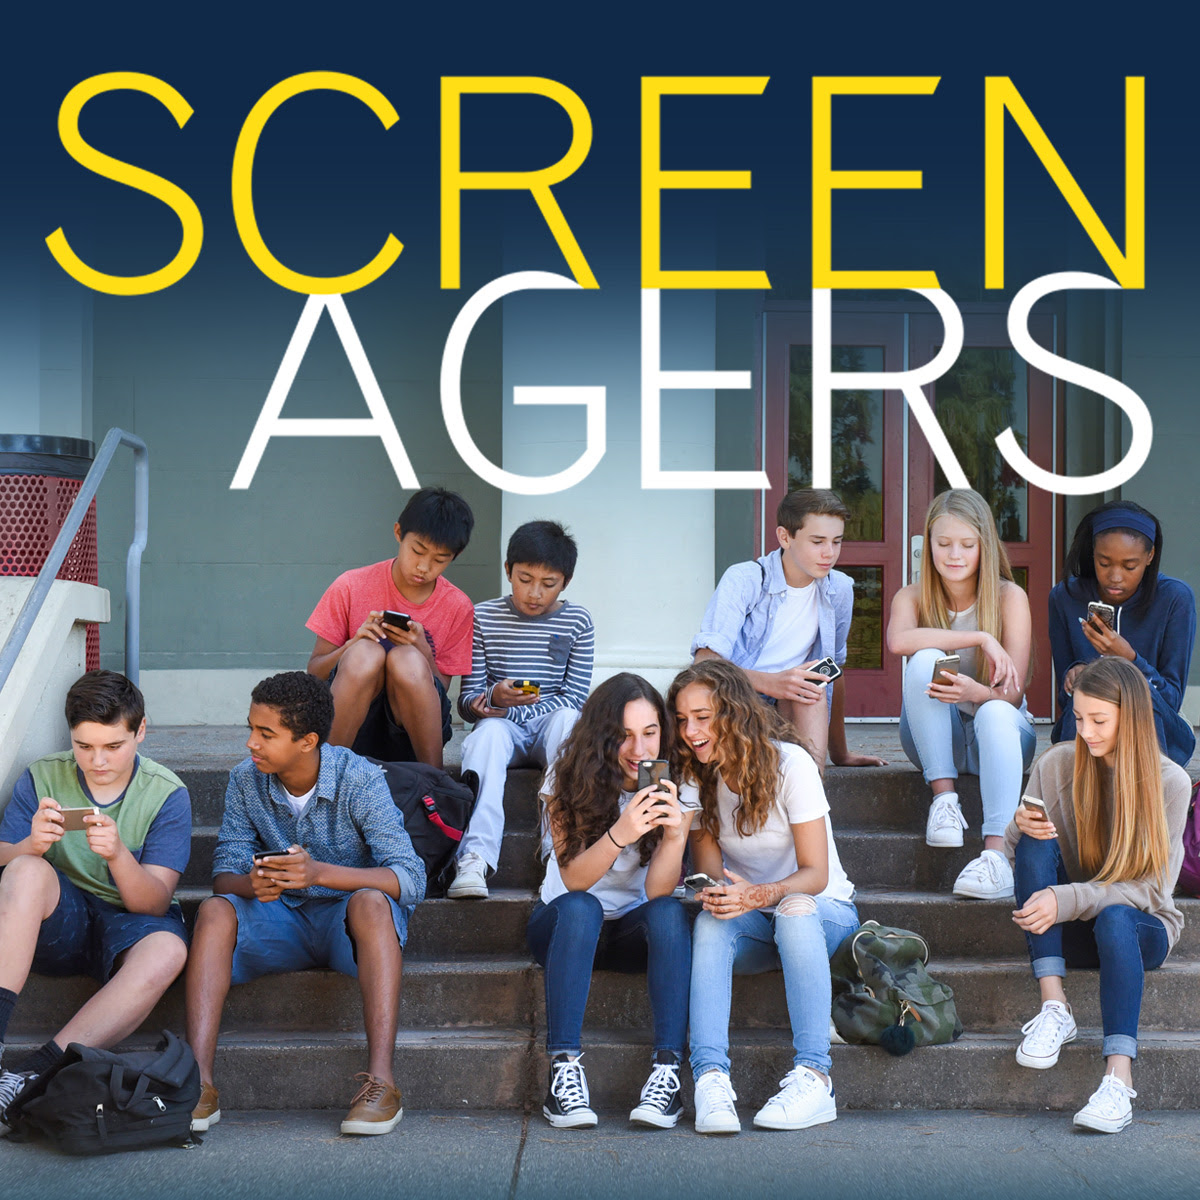 Screenagers Film Presented By Brookings Human Rights Commission